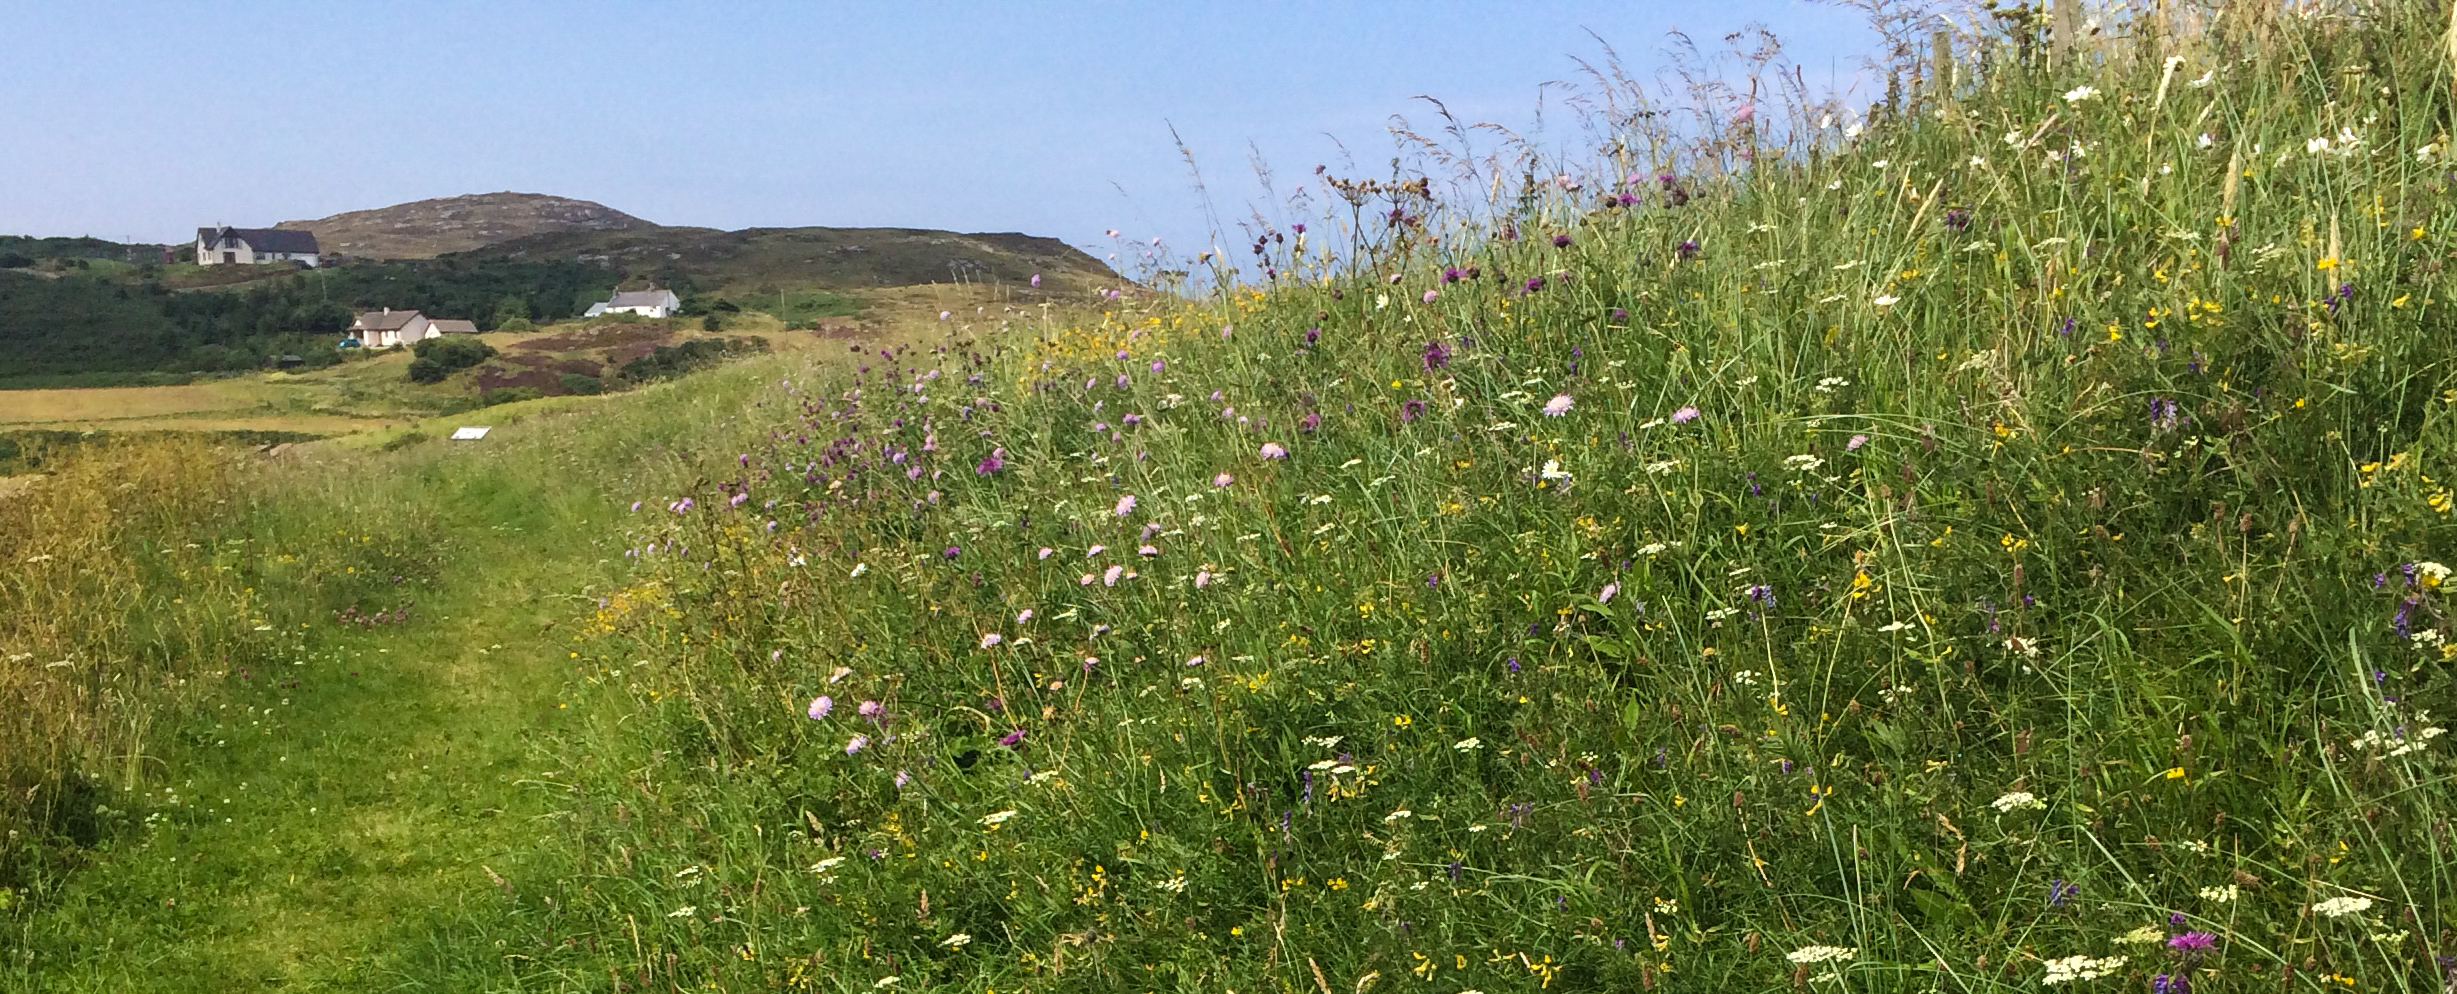 Bumblebee sanctuary at Bettyhill